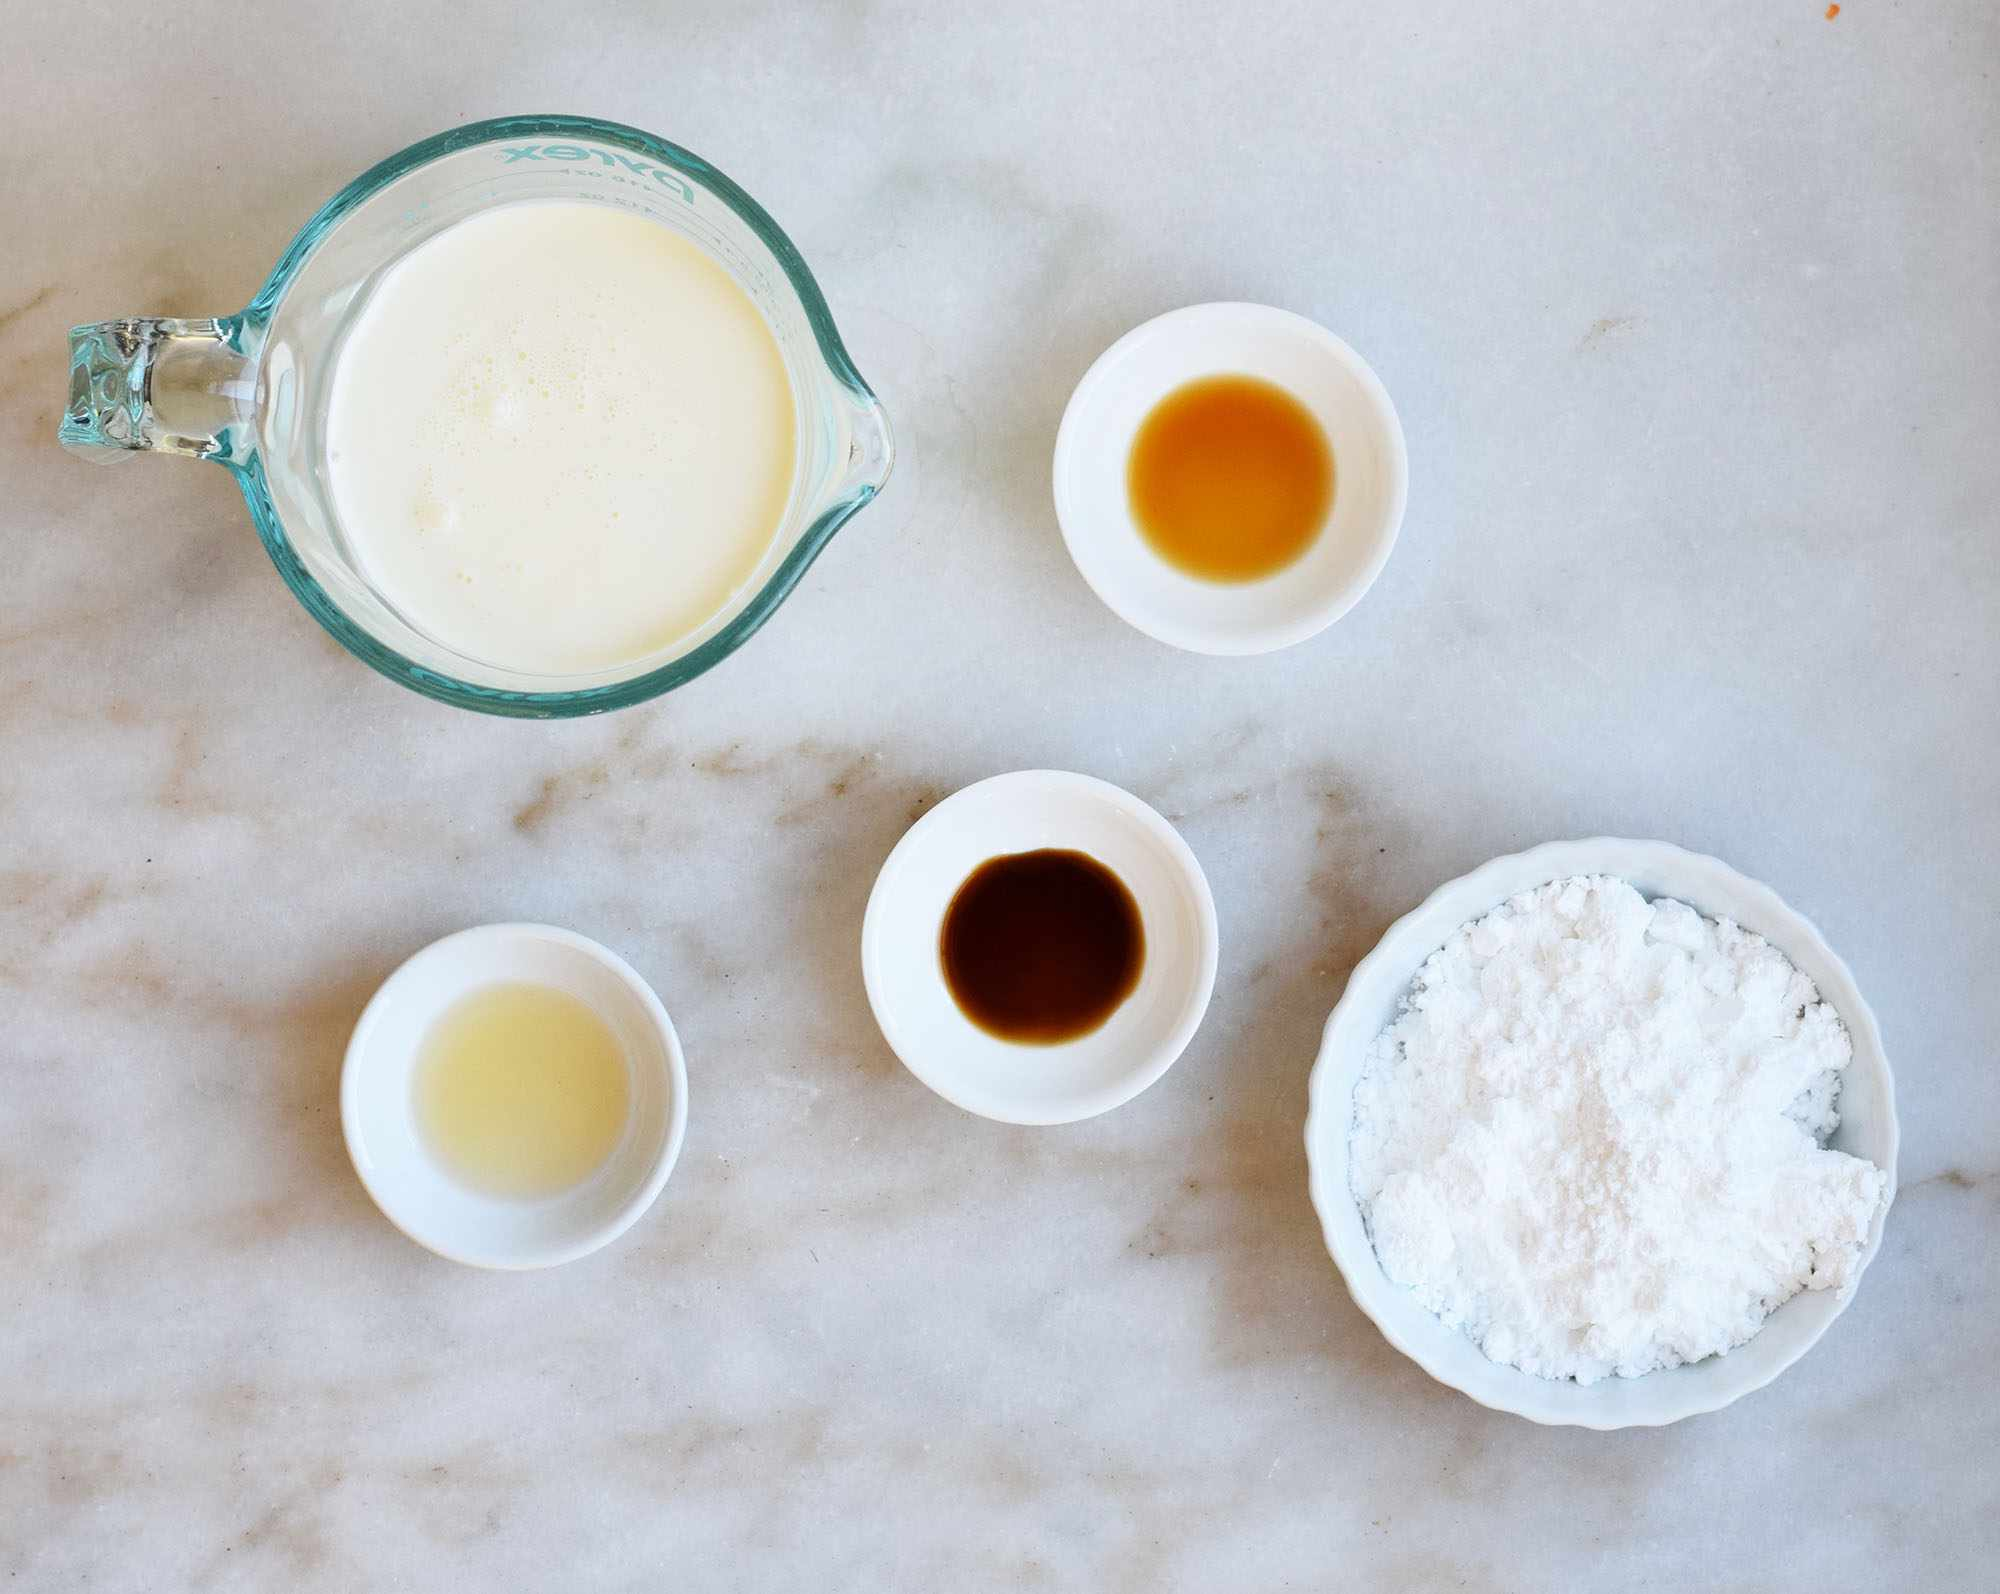 ingredients for bourbon whipped cream